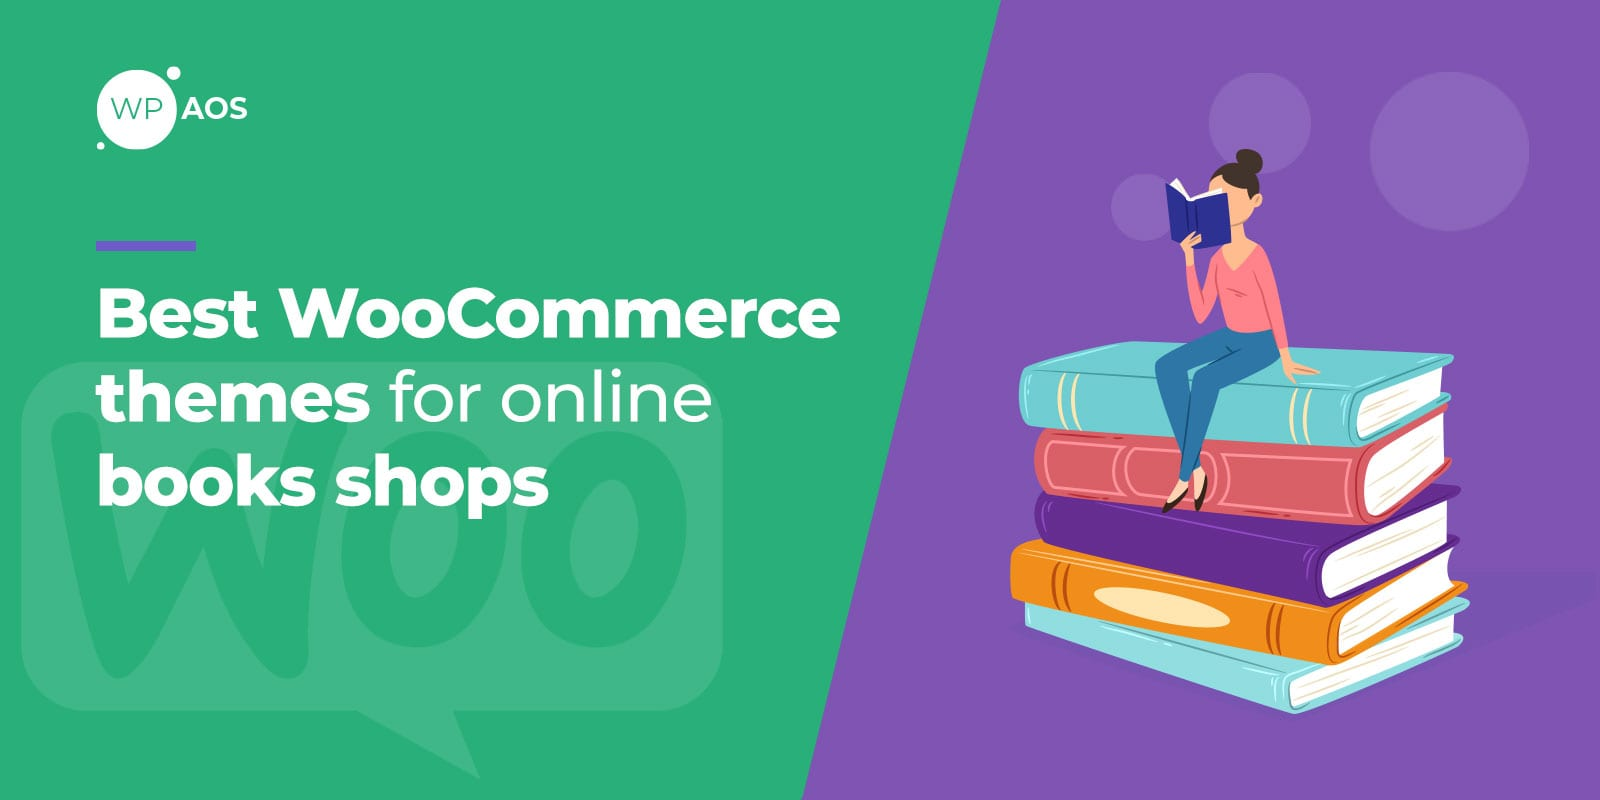 Best WooCommerce Themes for Online Books Shops, wpaos